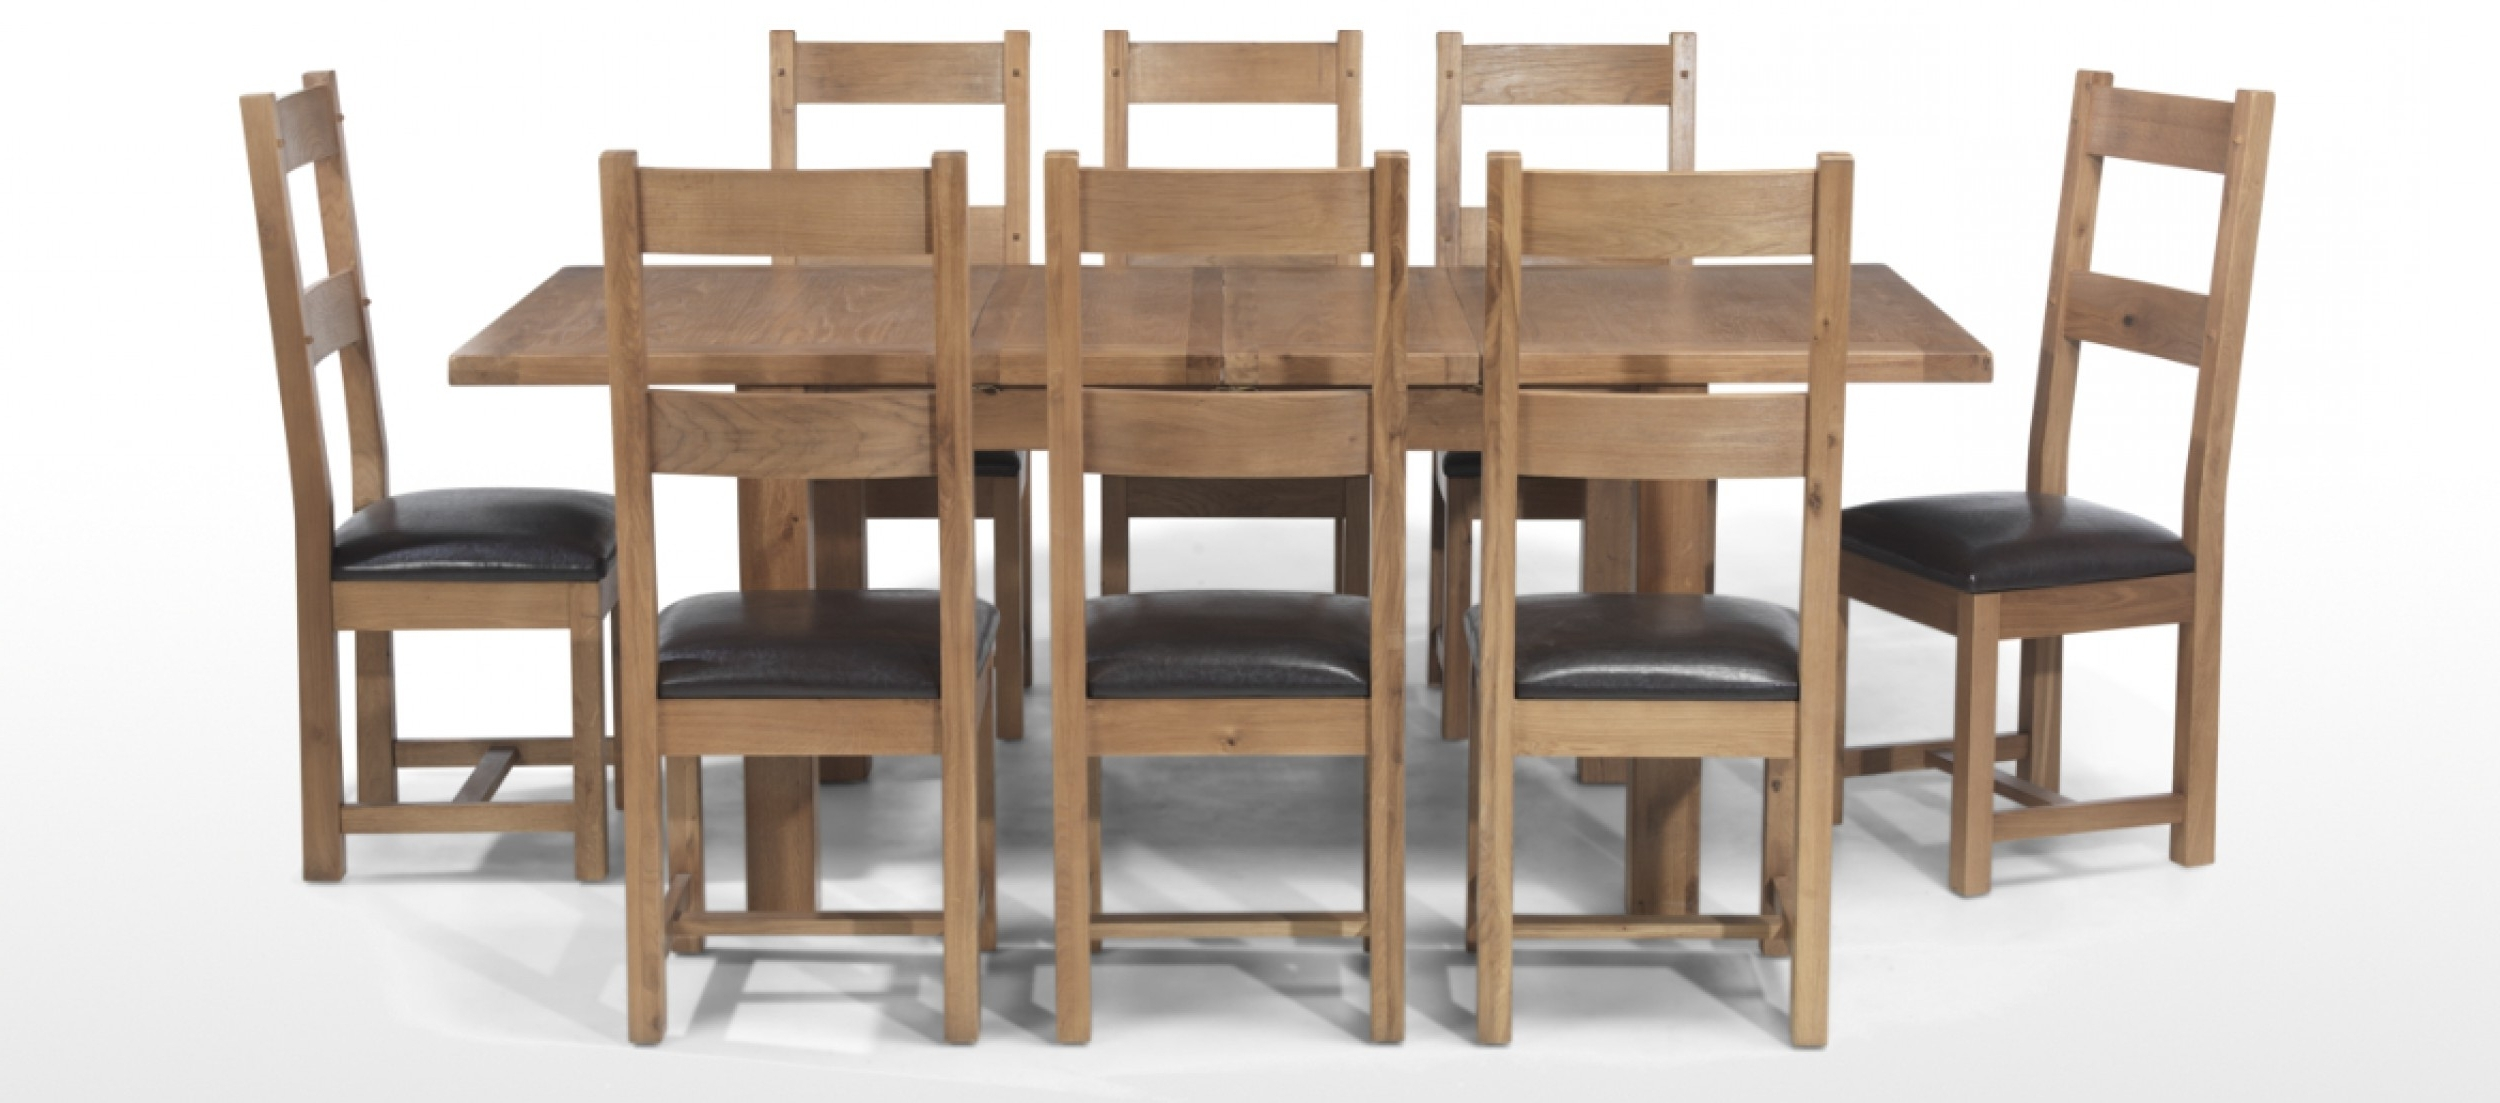 Quercus Pertaining To Extendable Dining Tables With 8 Seats (Gallery 11 of 25)